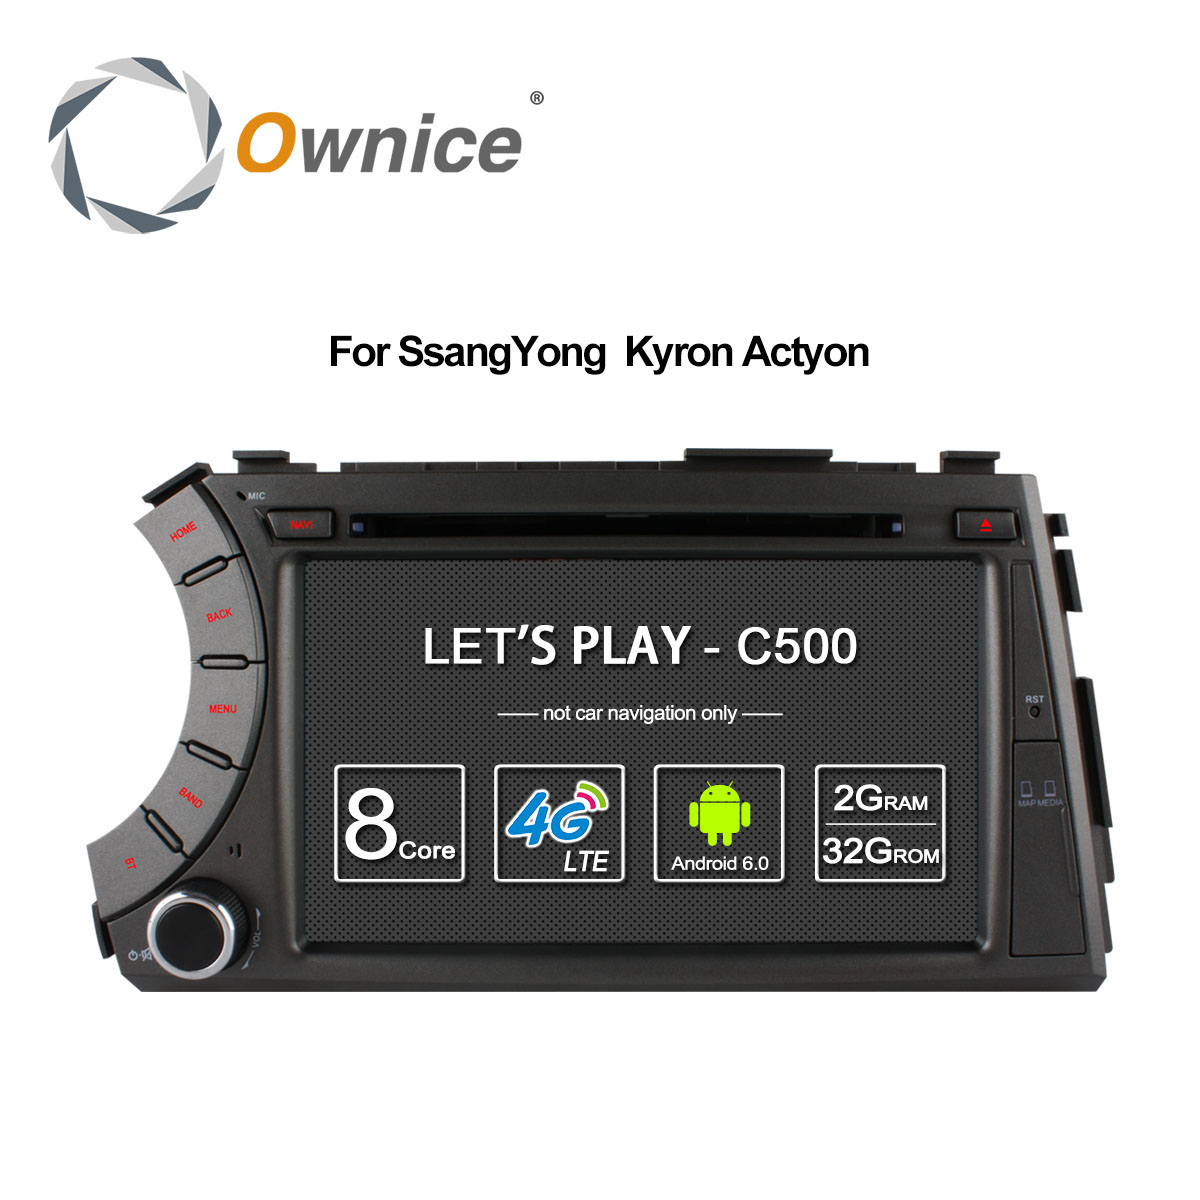 Ownice C500 4G SIM LTE Android 6.0 Octa 8 Core car dvd gps player for ssangyong Kyron Actyon 4G Wifi BT radio 2GB RAM 32GB ROM ownice c500 octa core android 6 0 car dvd gps for mazda 6 ruiyi ultra 2008 2009 2010 2011 2012 wifi 4g radio 2gb ram bt 32g rom